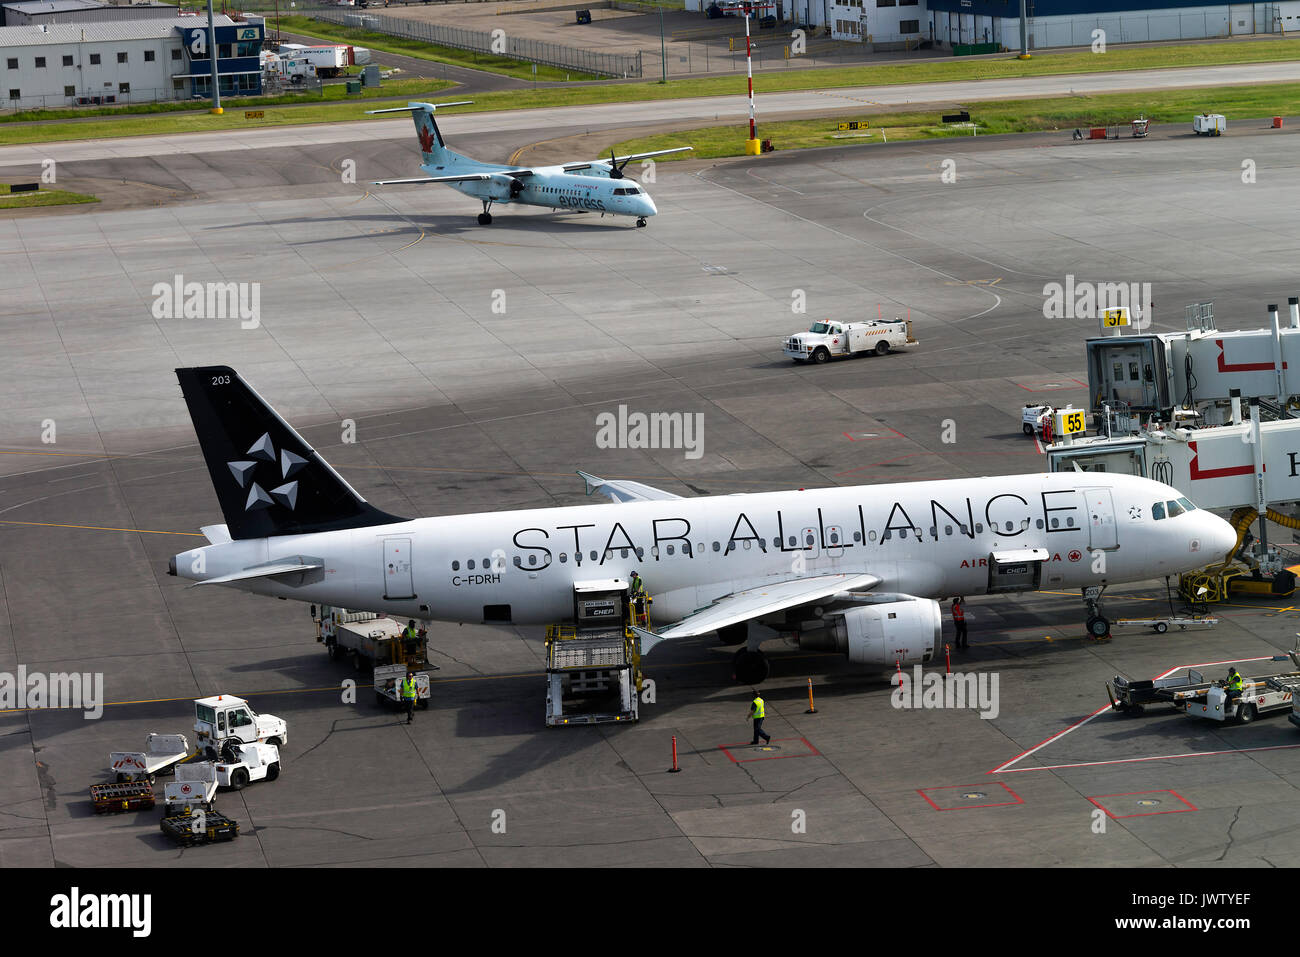 Air Canada Star Alliance Airline Airbus A320-211 Airliner C-FDRH Airliner on Stand Preparing for Departure at Calgary Airport Alberta Canada - Stock Image